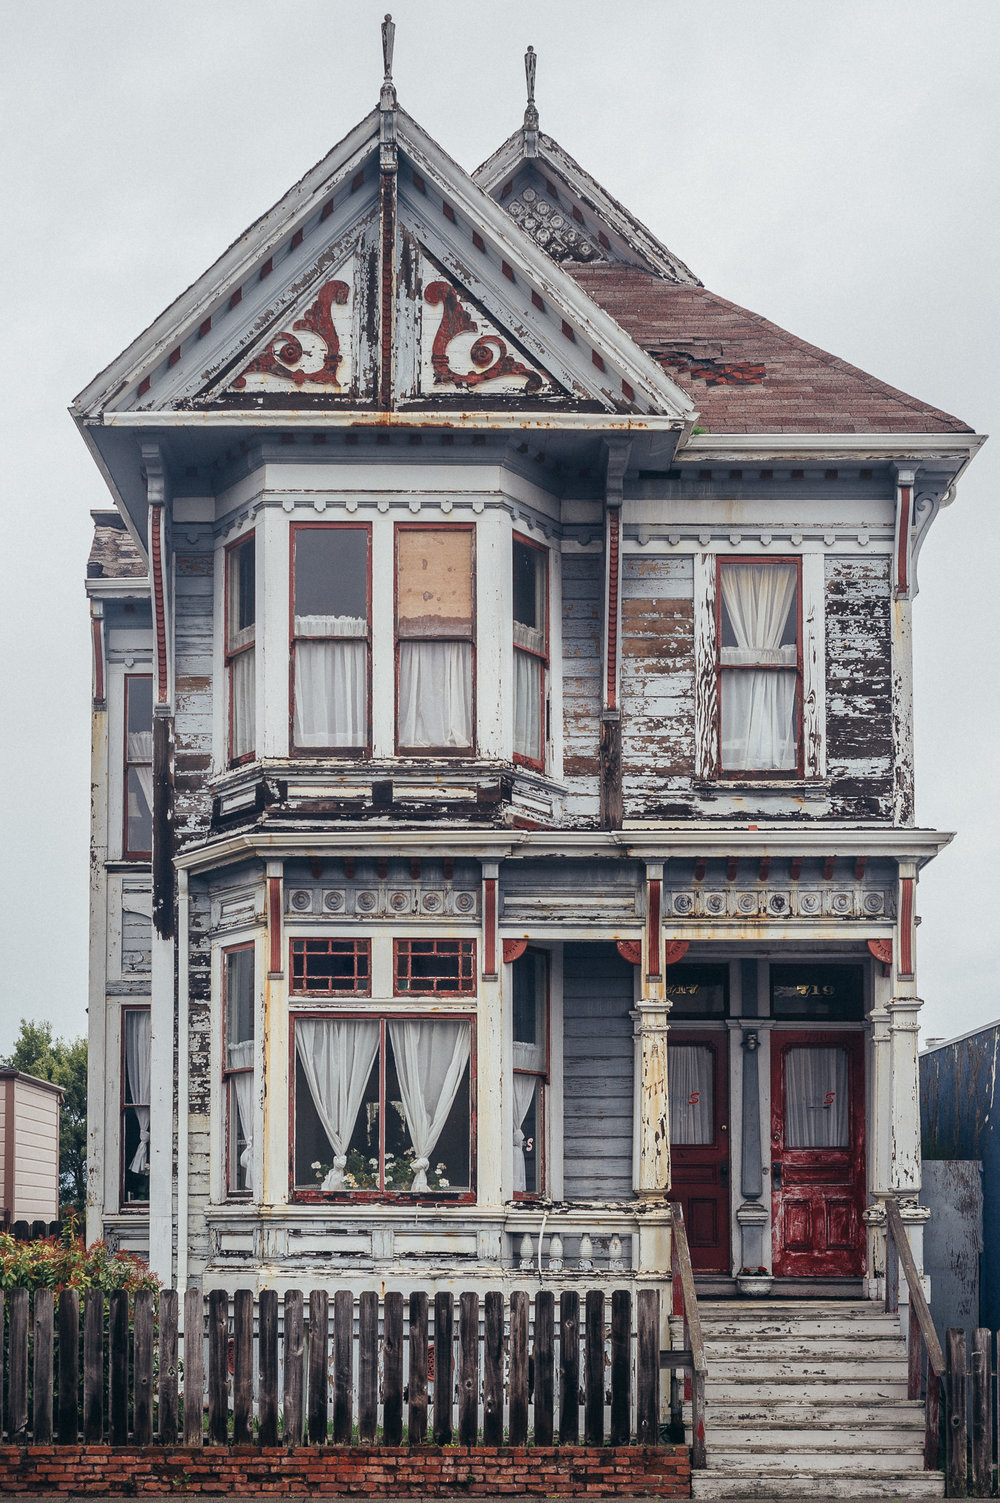 One of the many Victorian homes in Eureka, CA